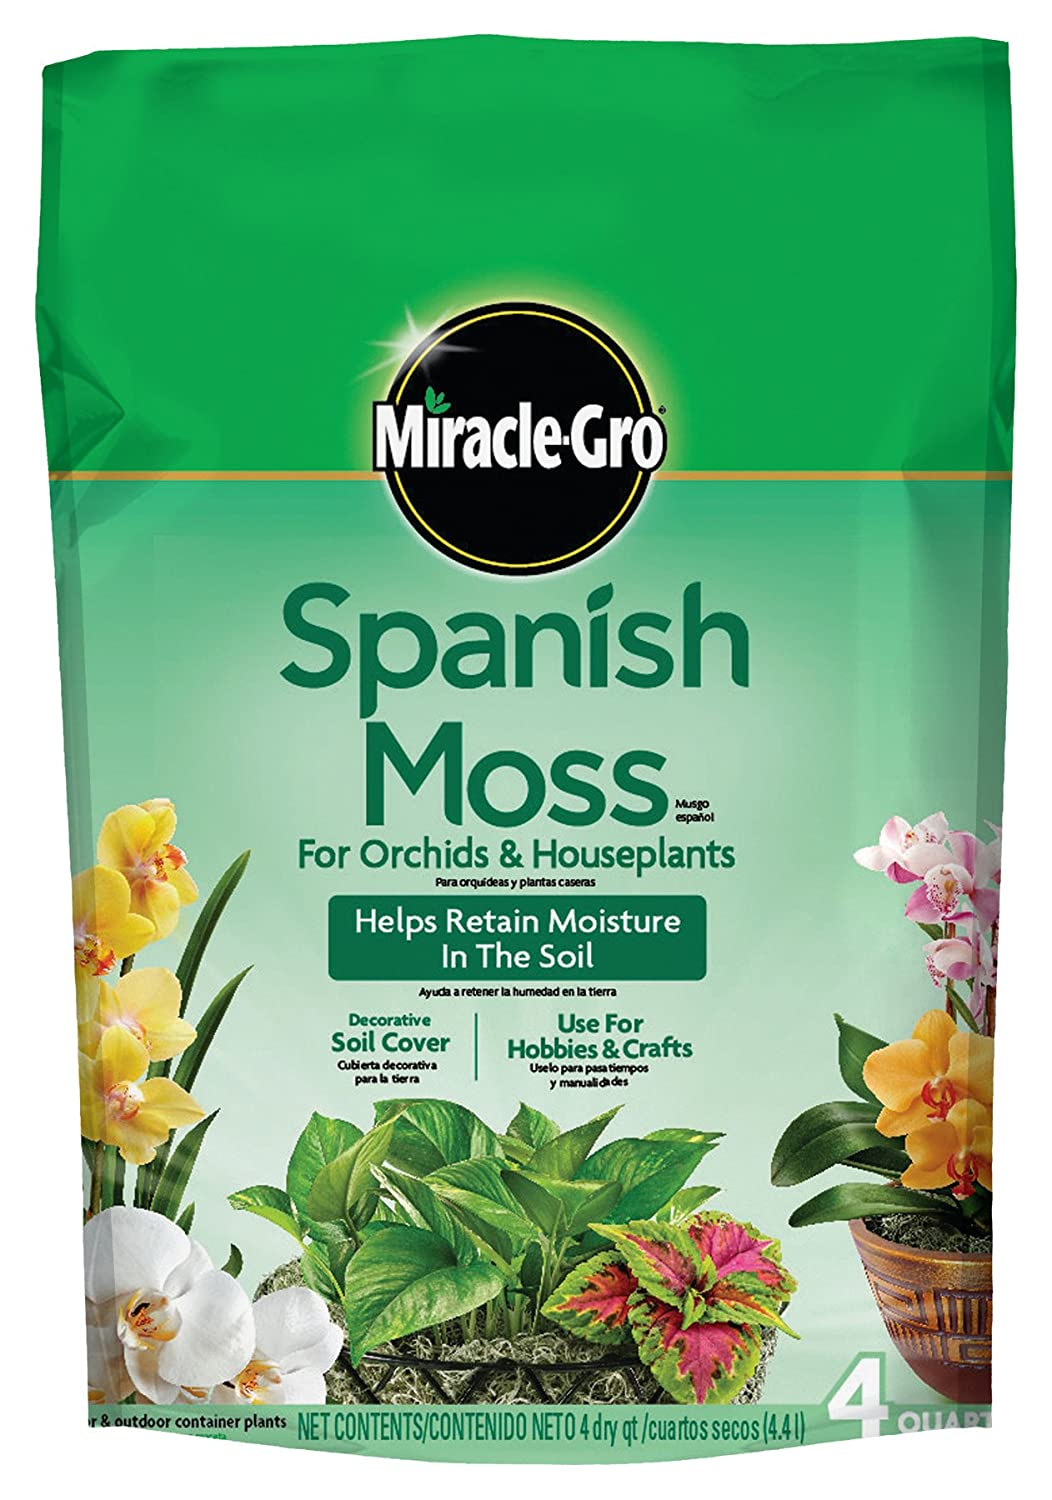 Miracle-Gro Spanish Moss For Hobbies, Crafts or as a Decorative Soi... 4-Quart